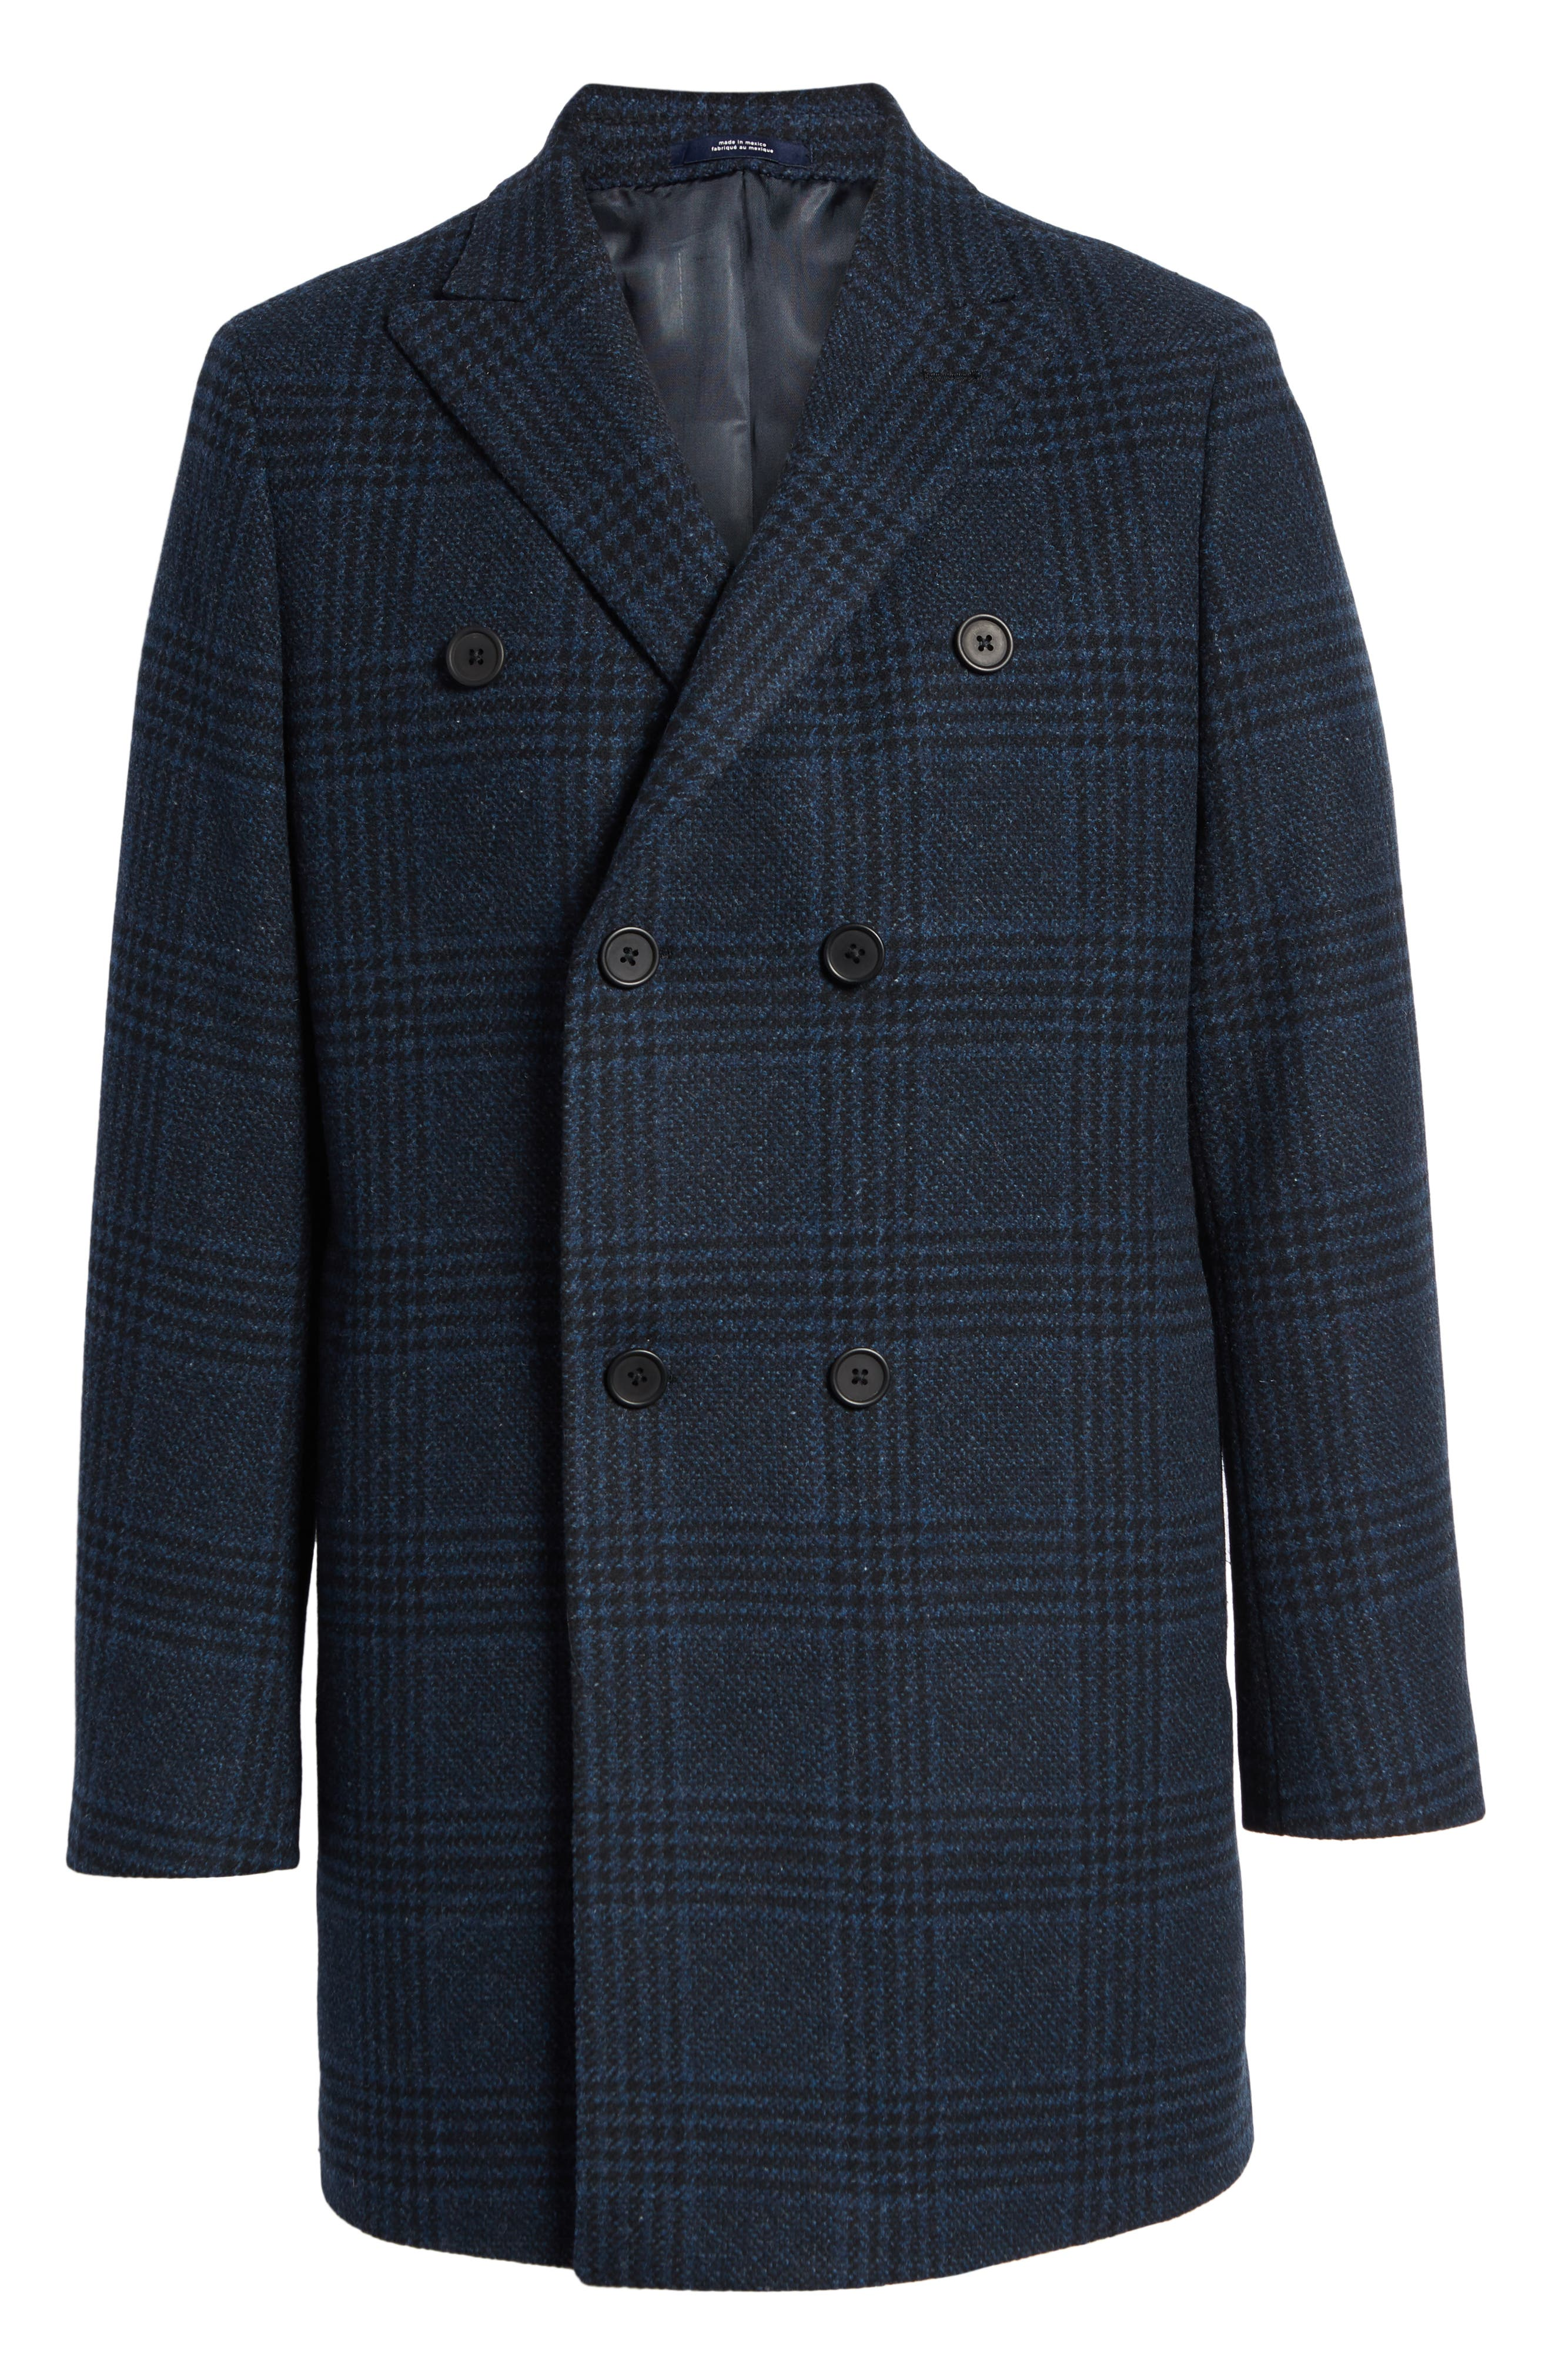 Jackson Extra Trim Fit Wool Overcoat,                             Alternate thumbnail 5, color,                             NAVY